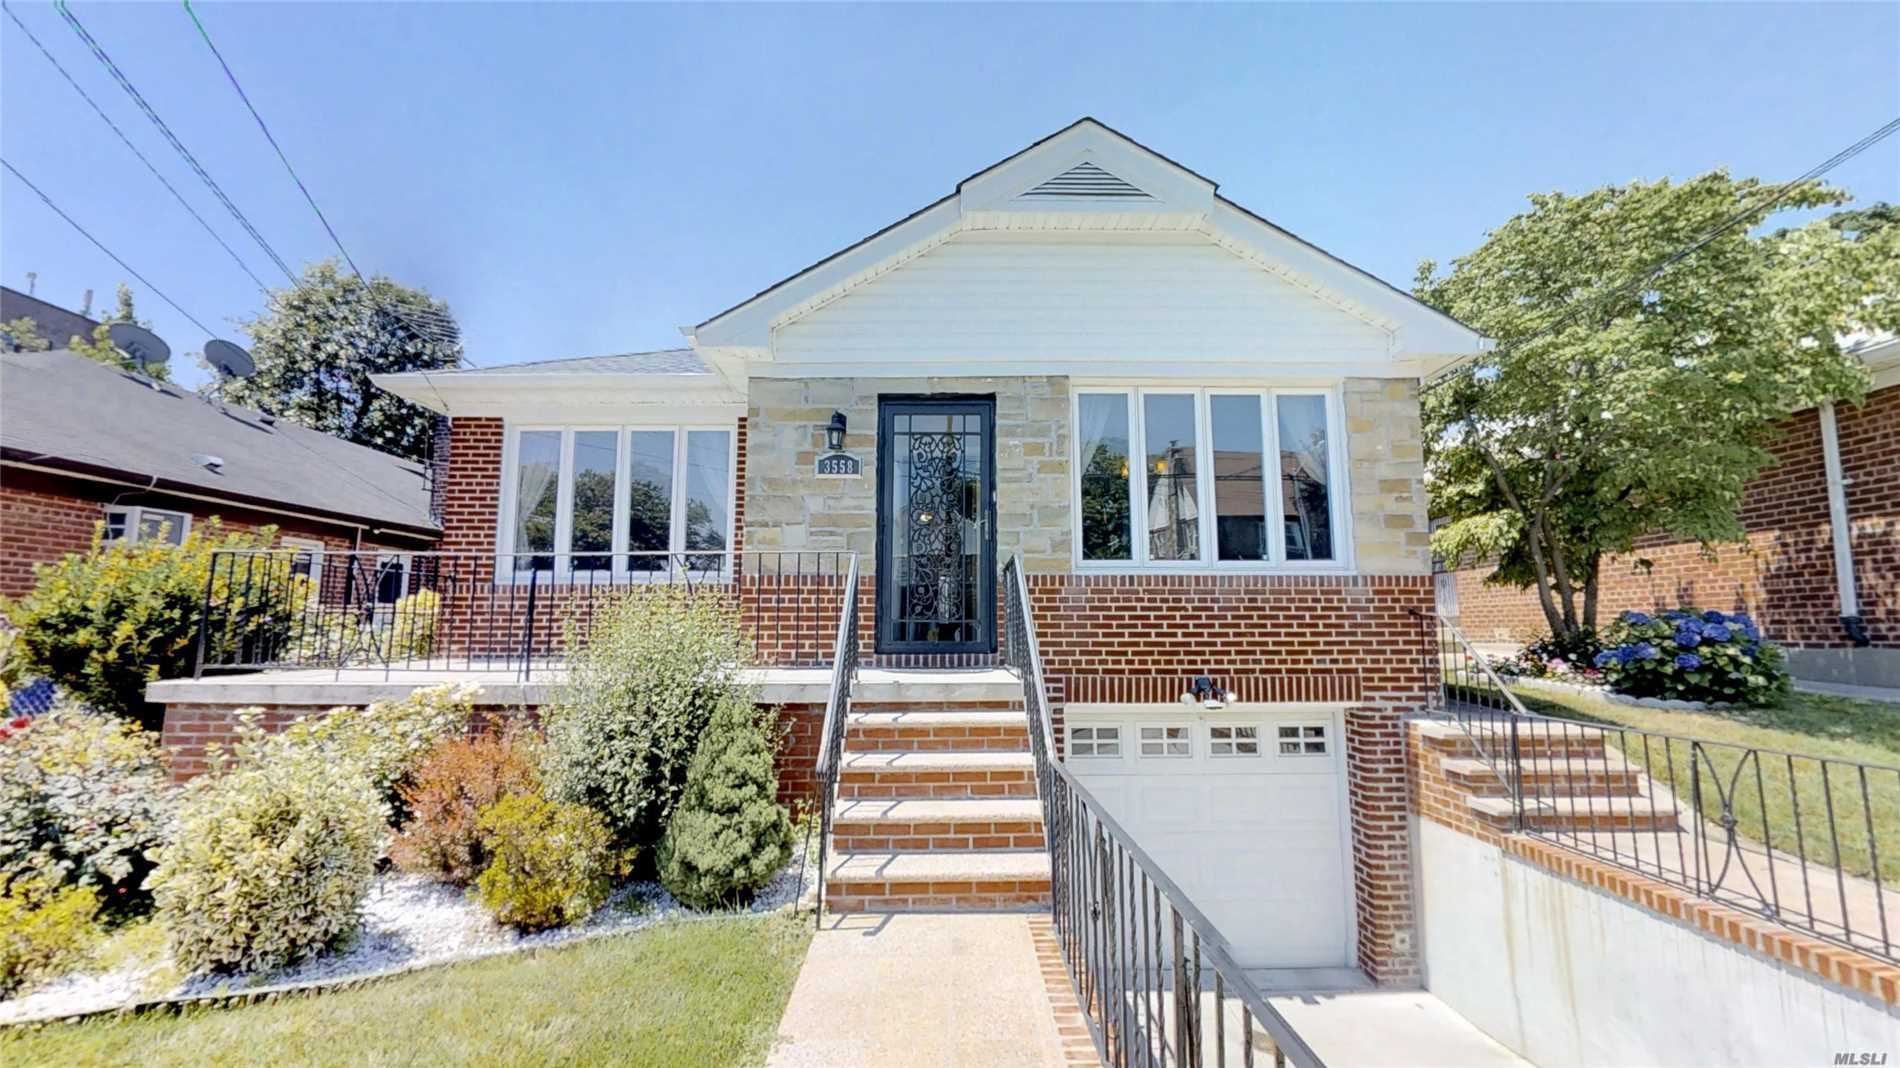 Lovely Renovated Detached Brick Ri-Ranch House With 3 Bedrooms, 2.5 Baths, Formal Dining Room, Eat In Kitchen, Hardwood Floors . New Central Ac, New Roofing.Lot Size 46X100, Building Size 29.67X51 (1513 Sqft) Plus Sunroom 15X19 Legal Extension, Fin Bsmt With Family Room, Garage, 5 Blocks From Lirr, Bus # 28 To Flushing, Convenience To All